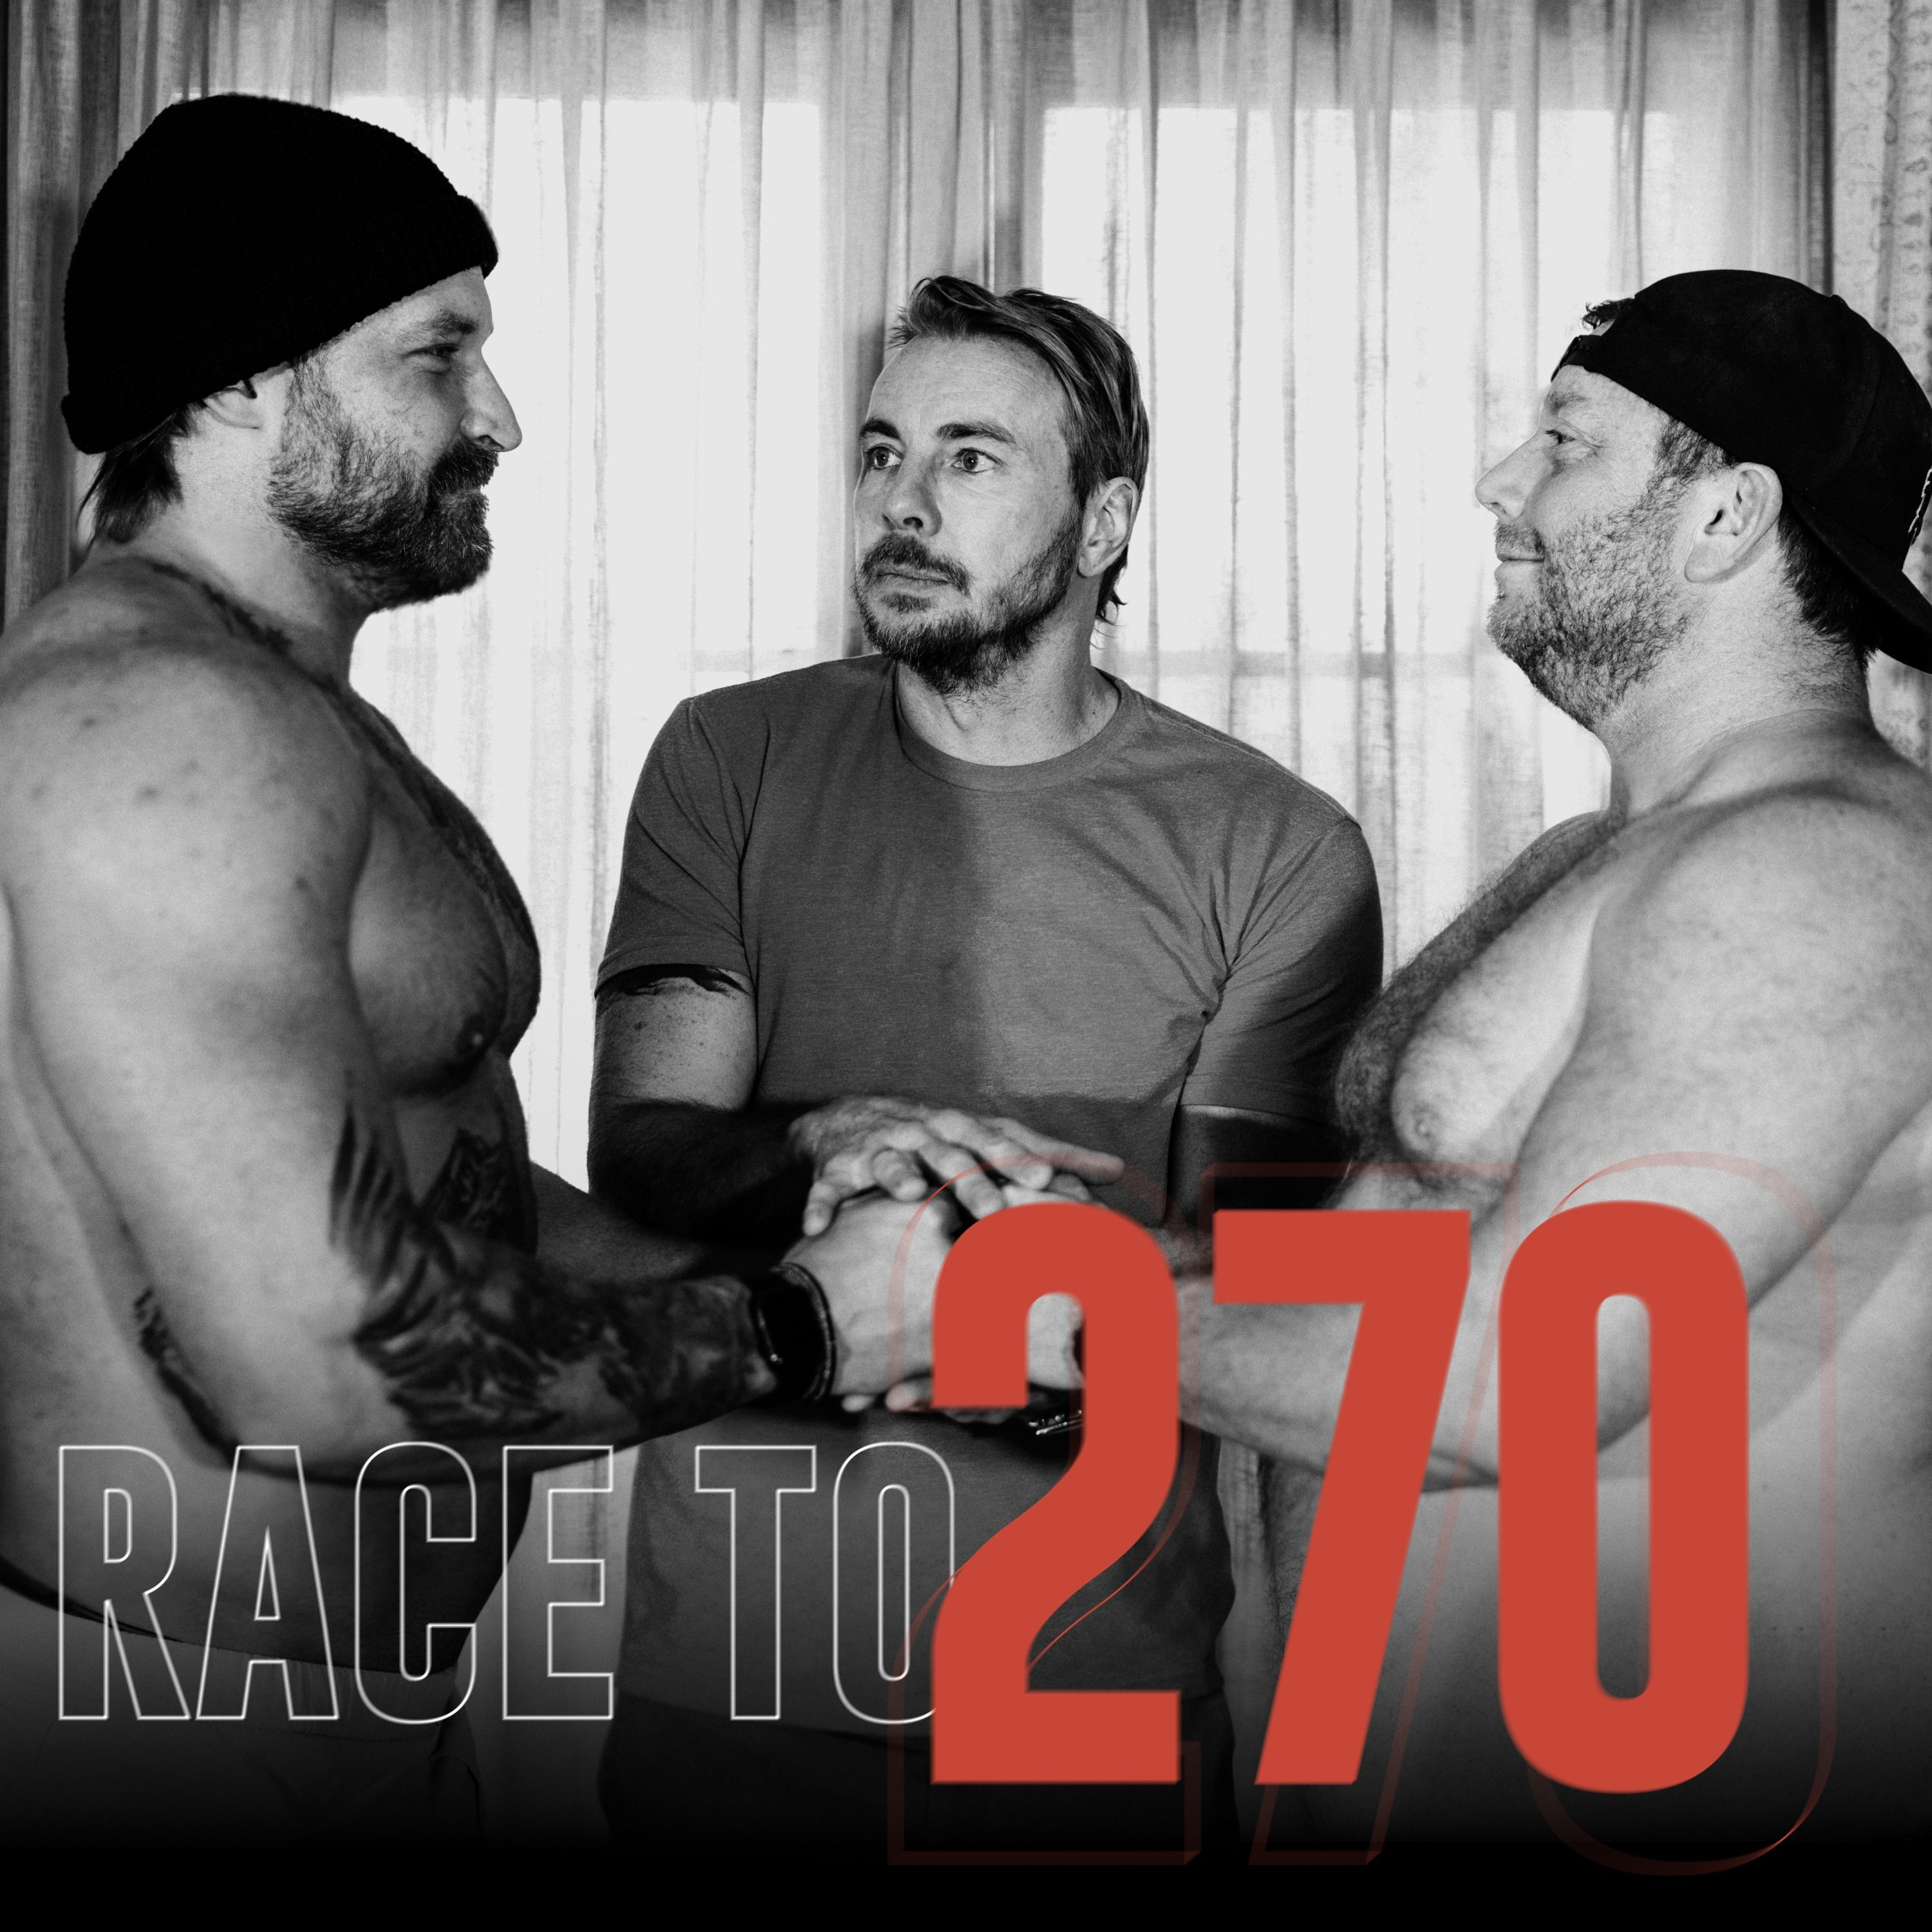 Introducing... Race to 270